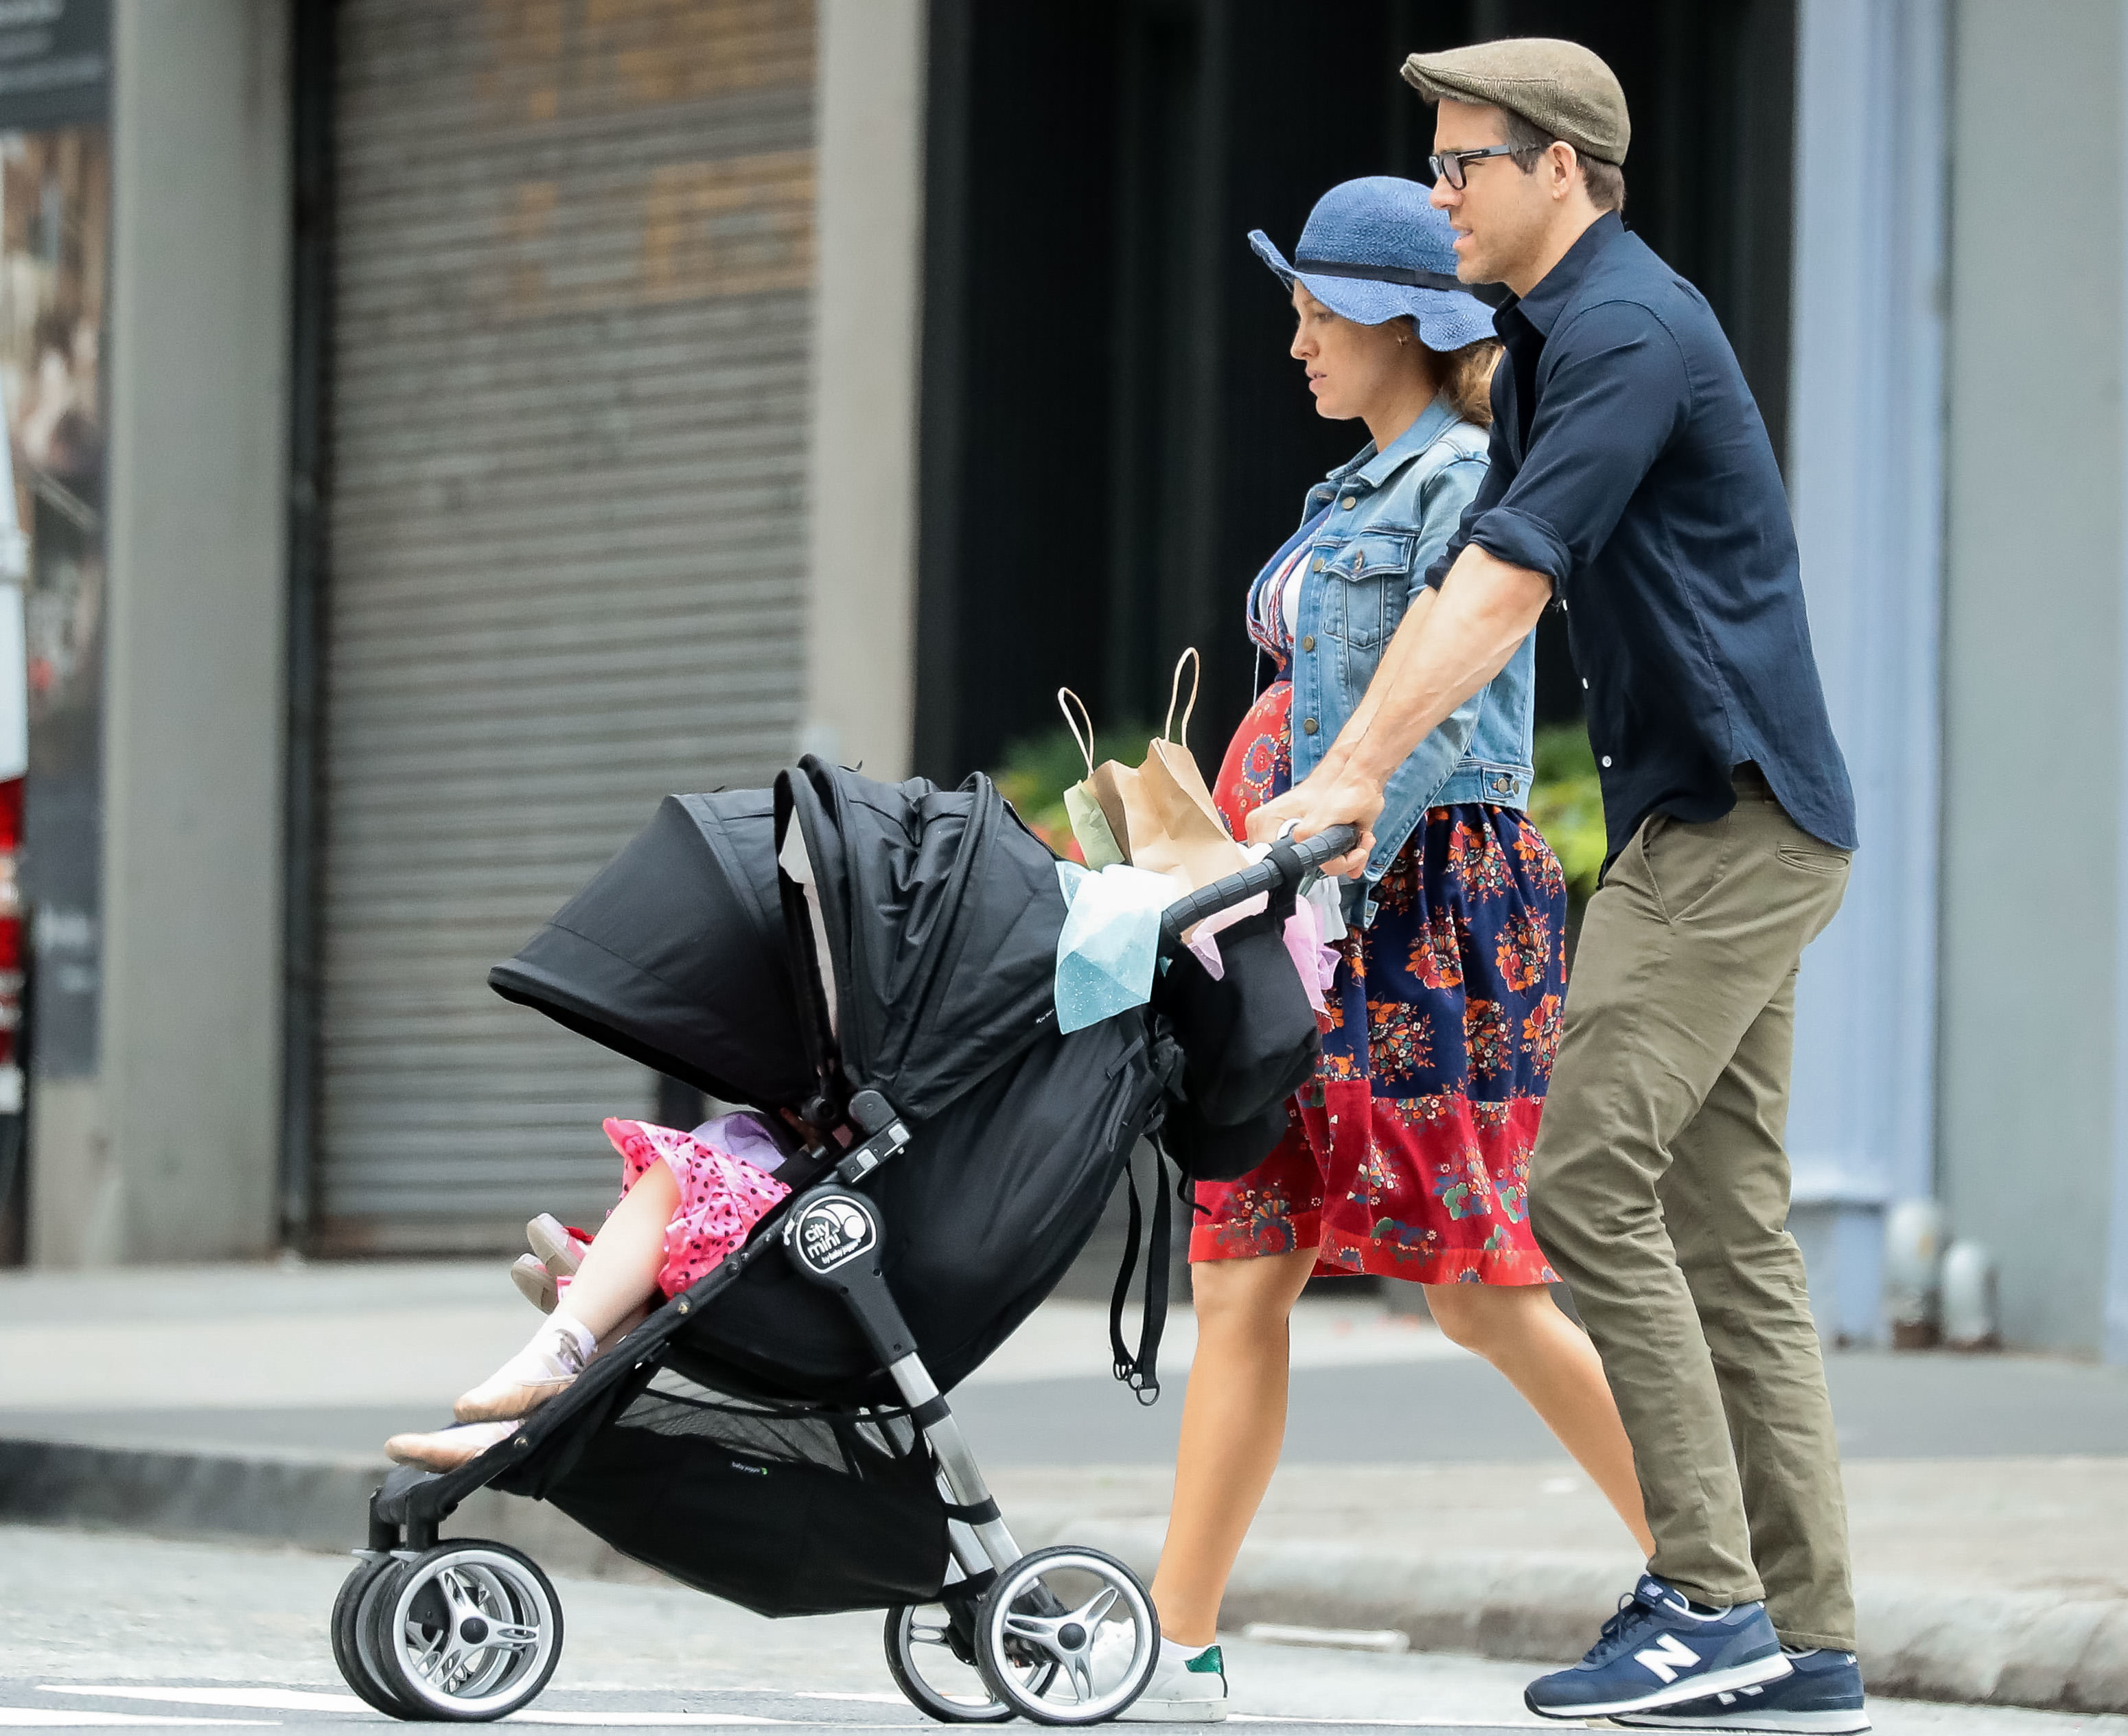 Blake Lively, Ryan Reynolds and their daughter, Inez are seen in New York City on June 19, 2019.